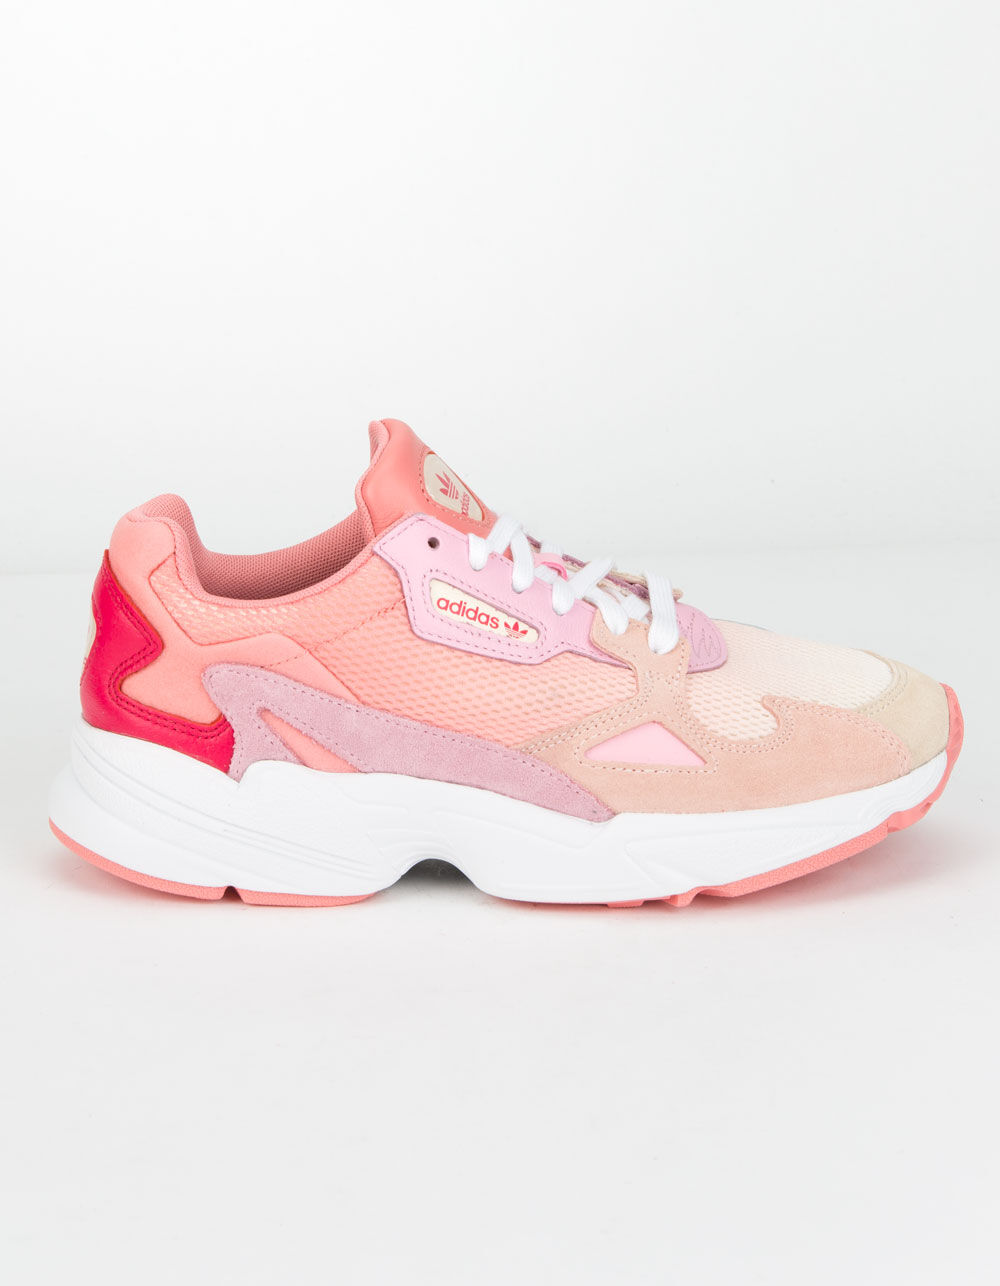 ADIDAS Falcon Ecru Tint & Icey Pink Shoes